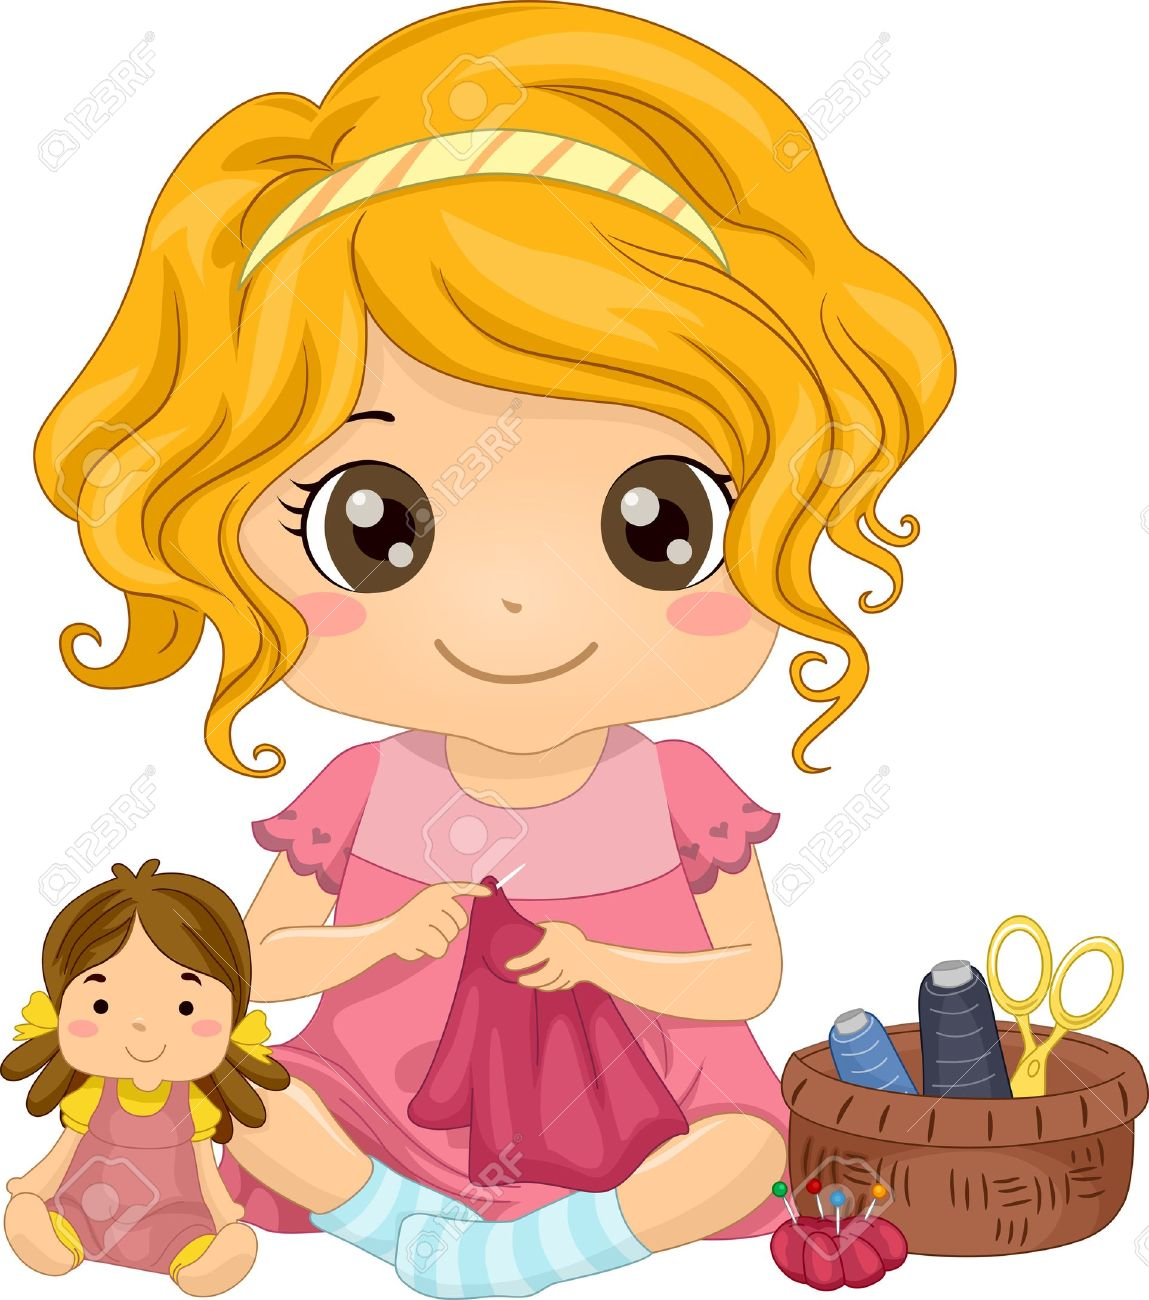 10488 Little Girl free clipart.